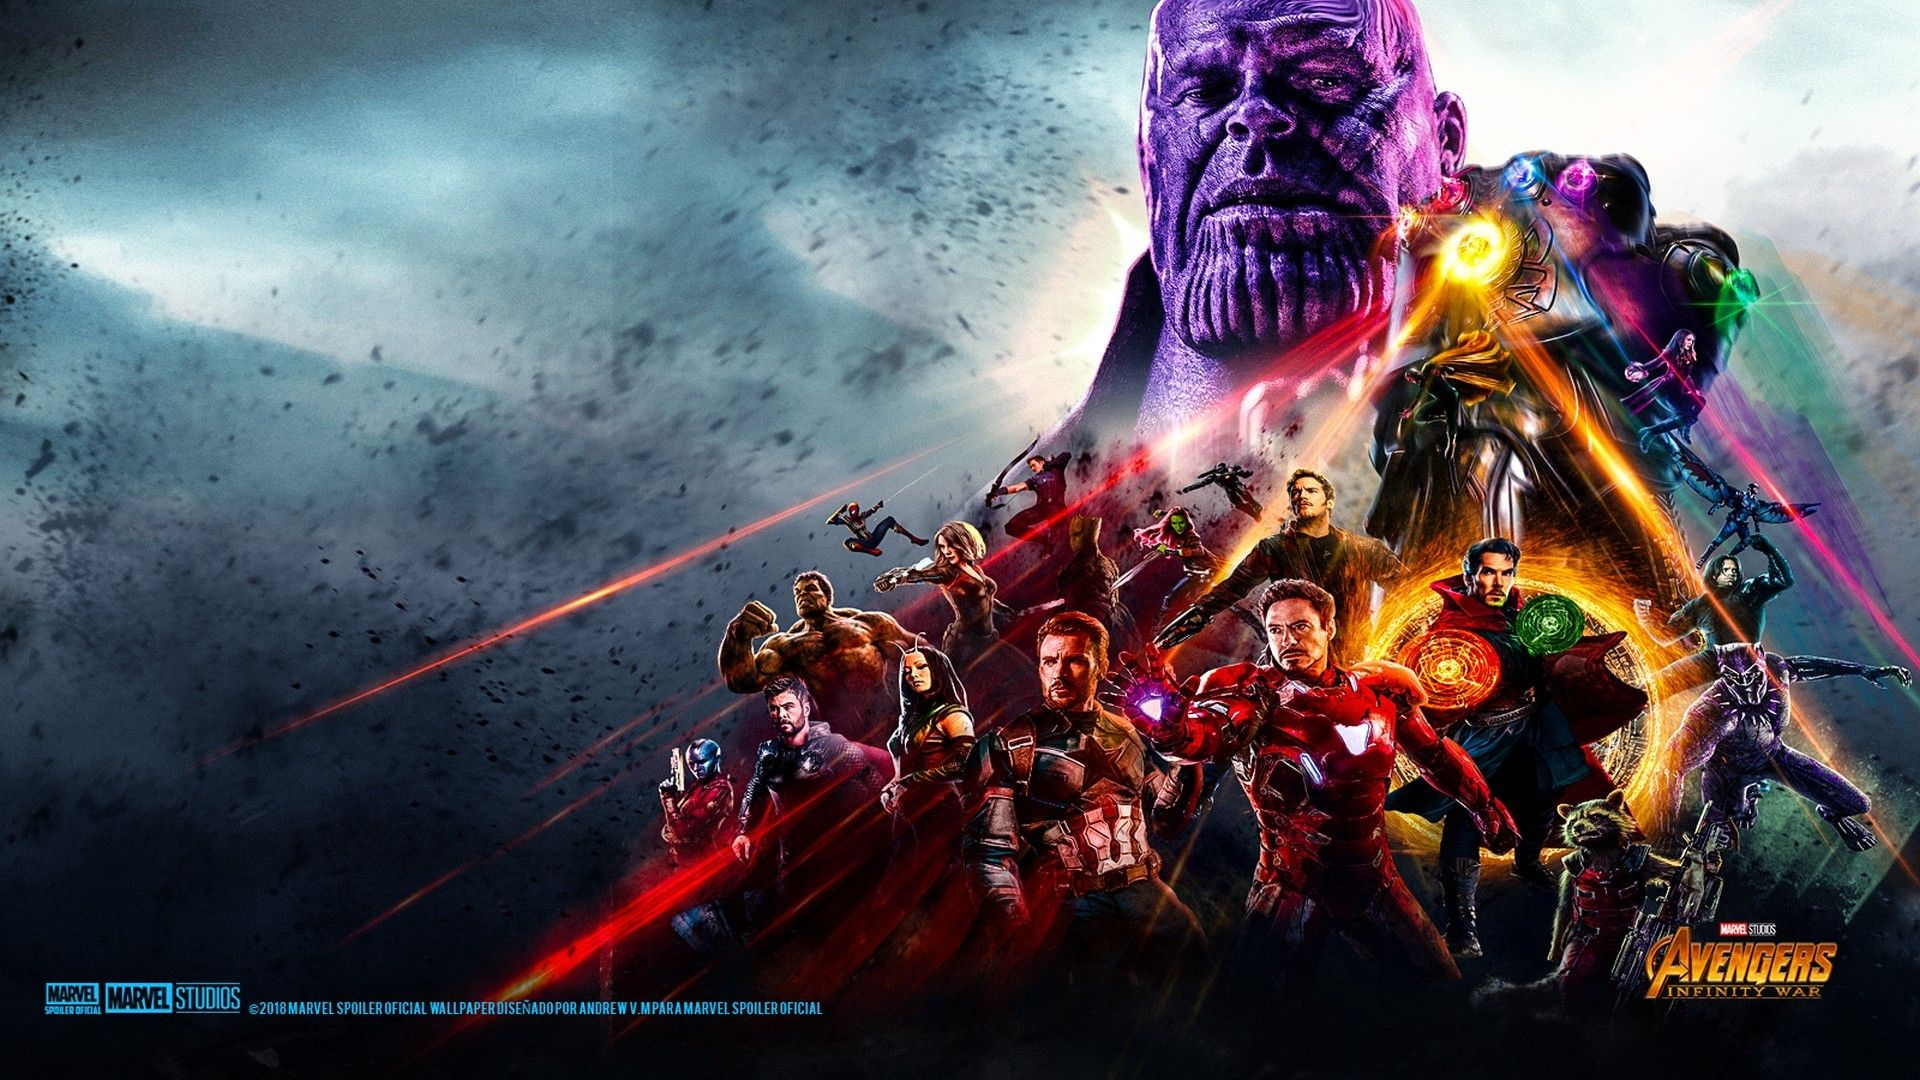 Avengers 3 Wallpaper For Desktop Best Hd Wallpapers Avengers Wallpaper Avengers Desktop Wallpaper